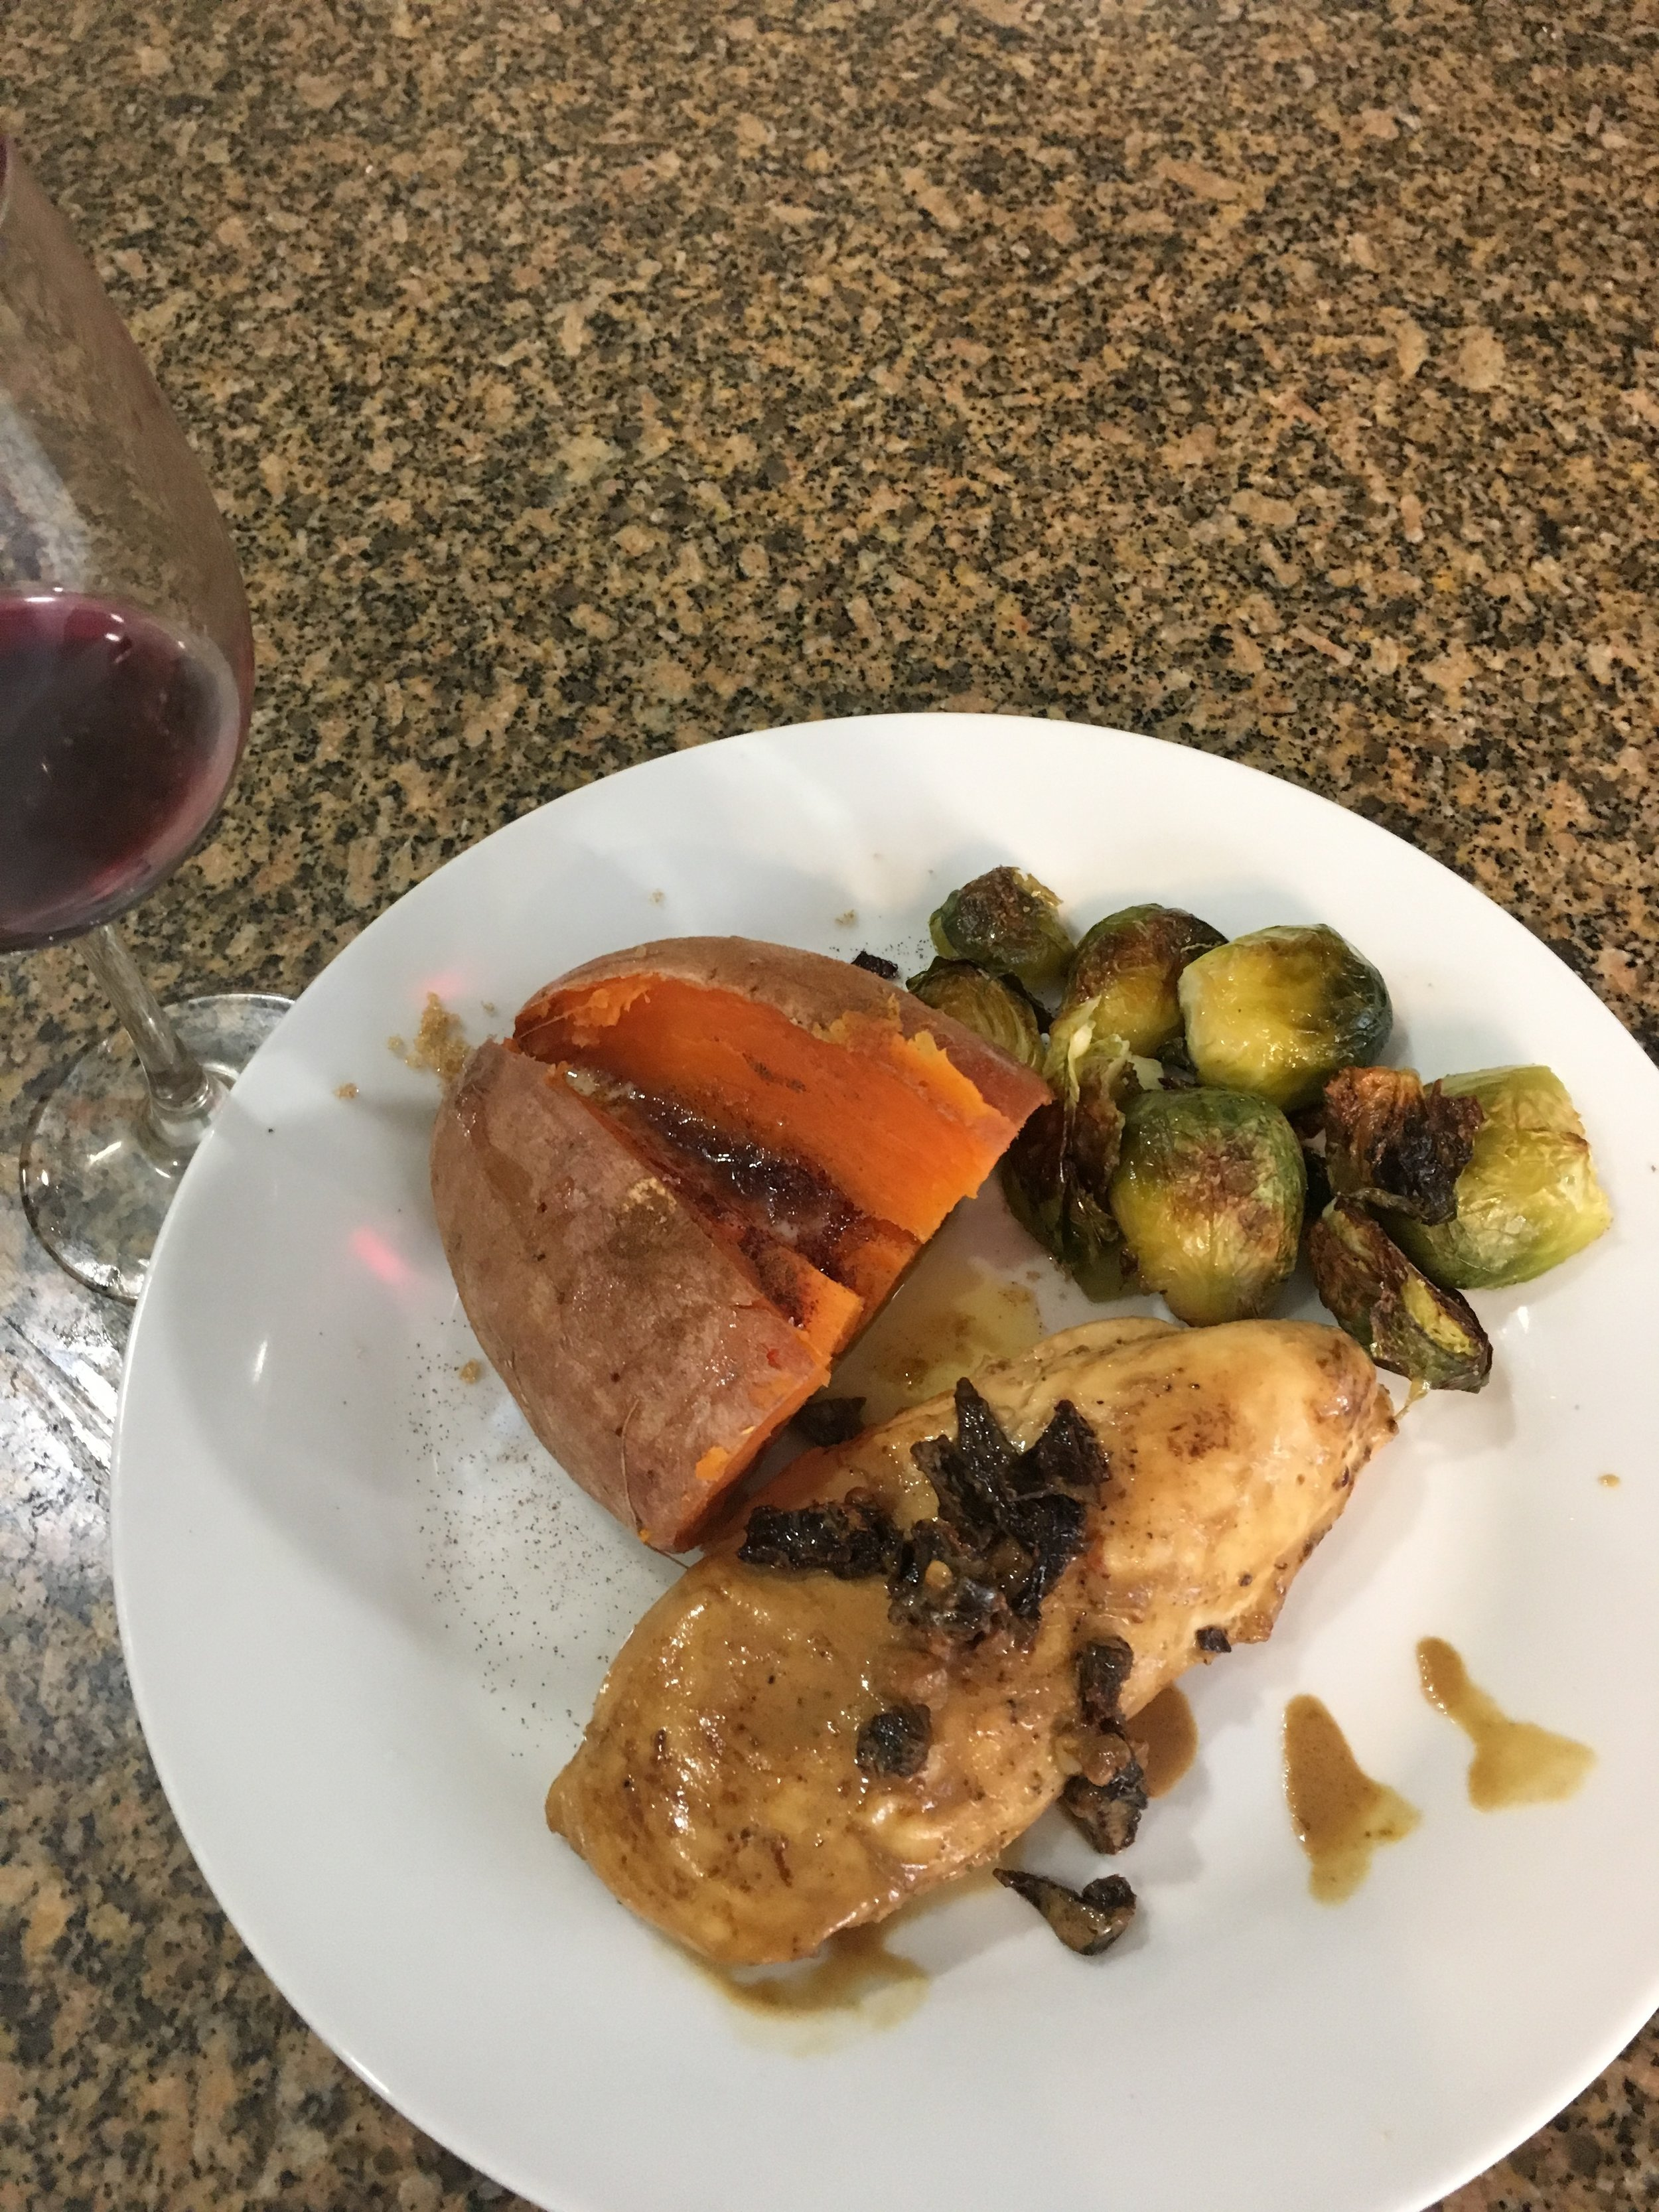 Tonights meal. Sundried tomato chicken, parmesan brussel sprouts and sweet potatoes.